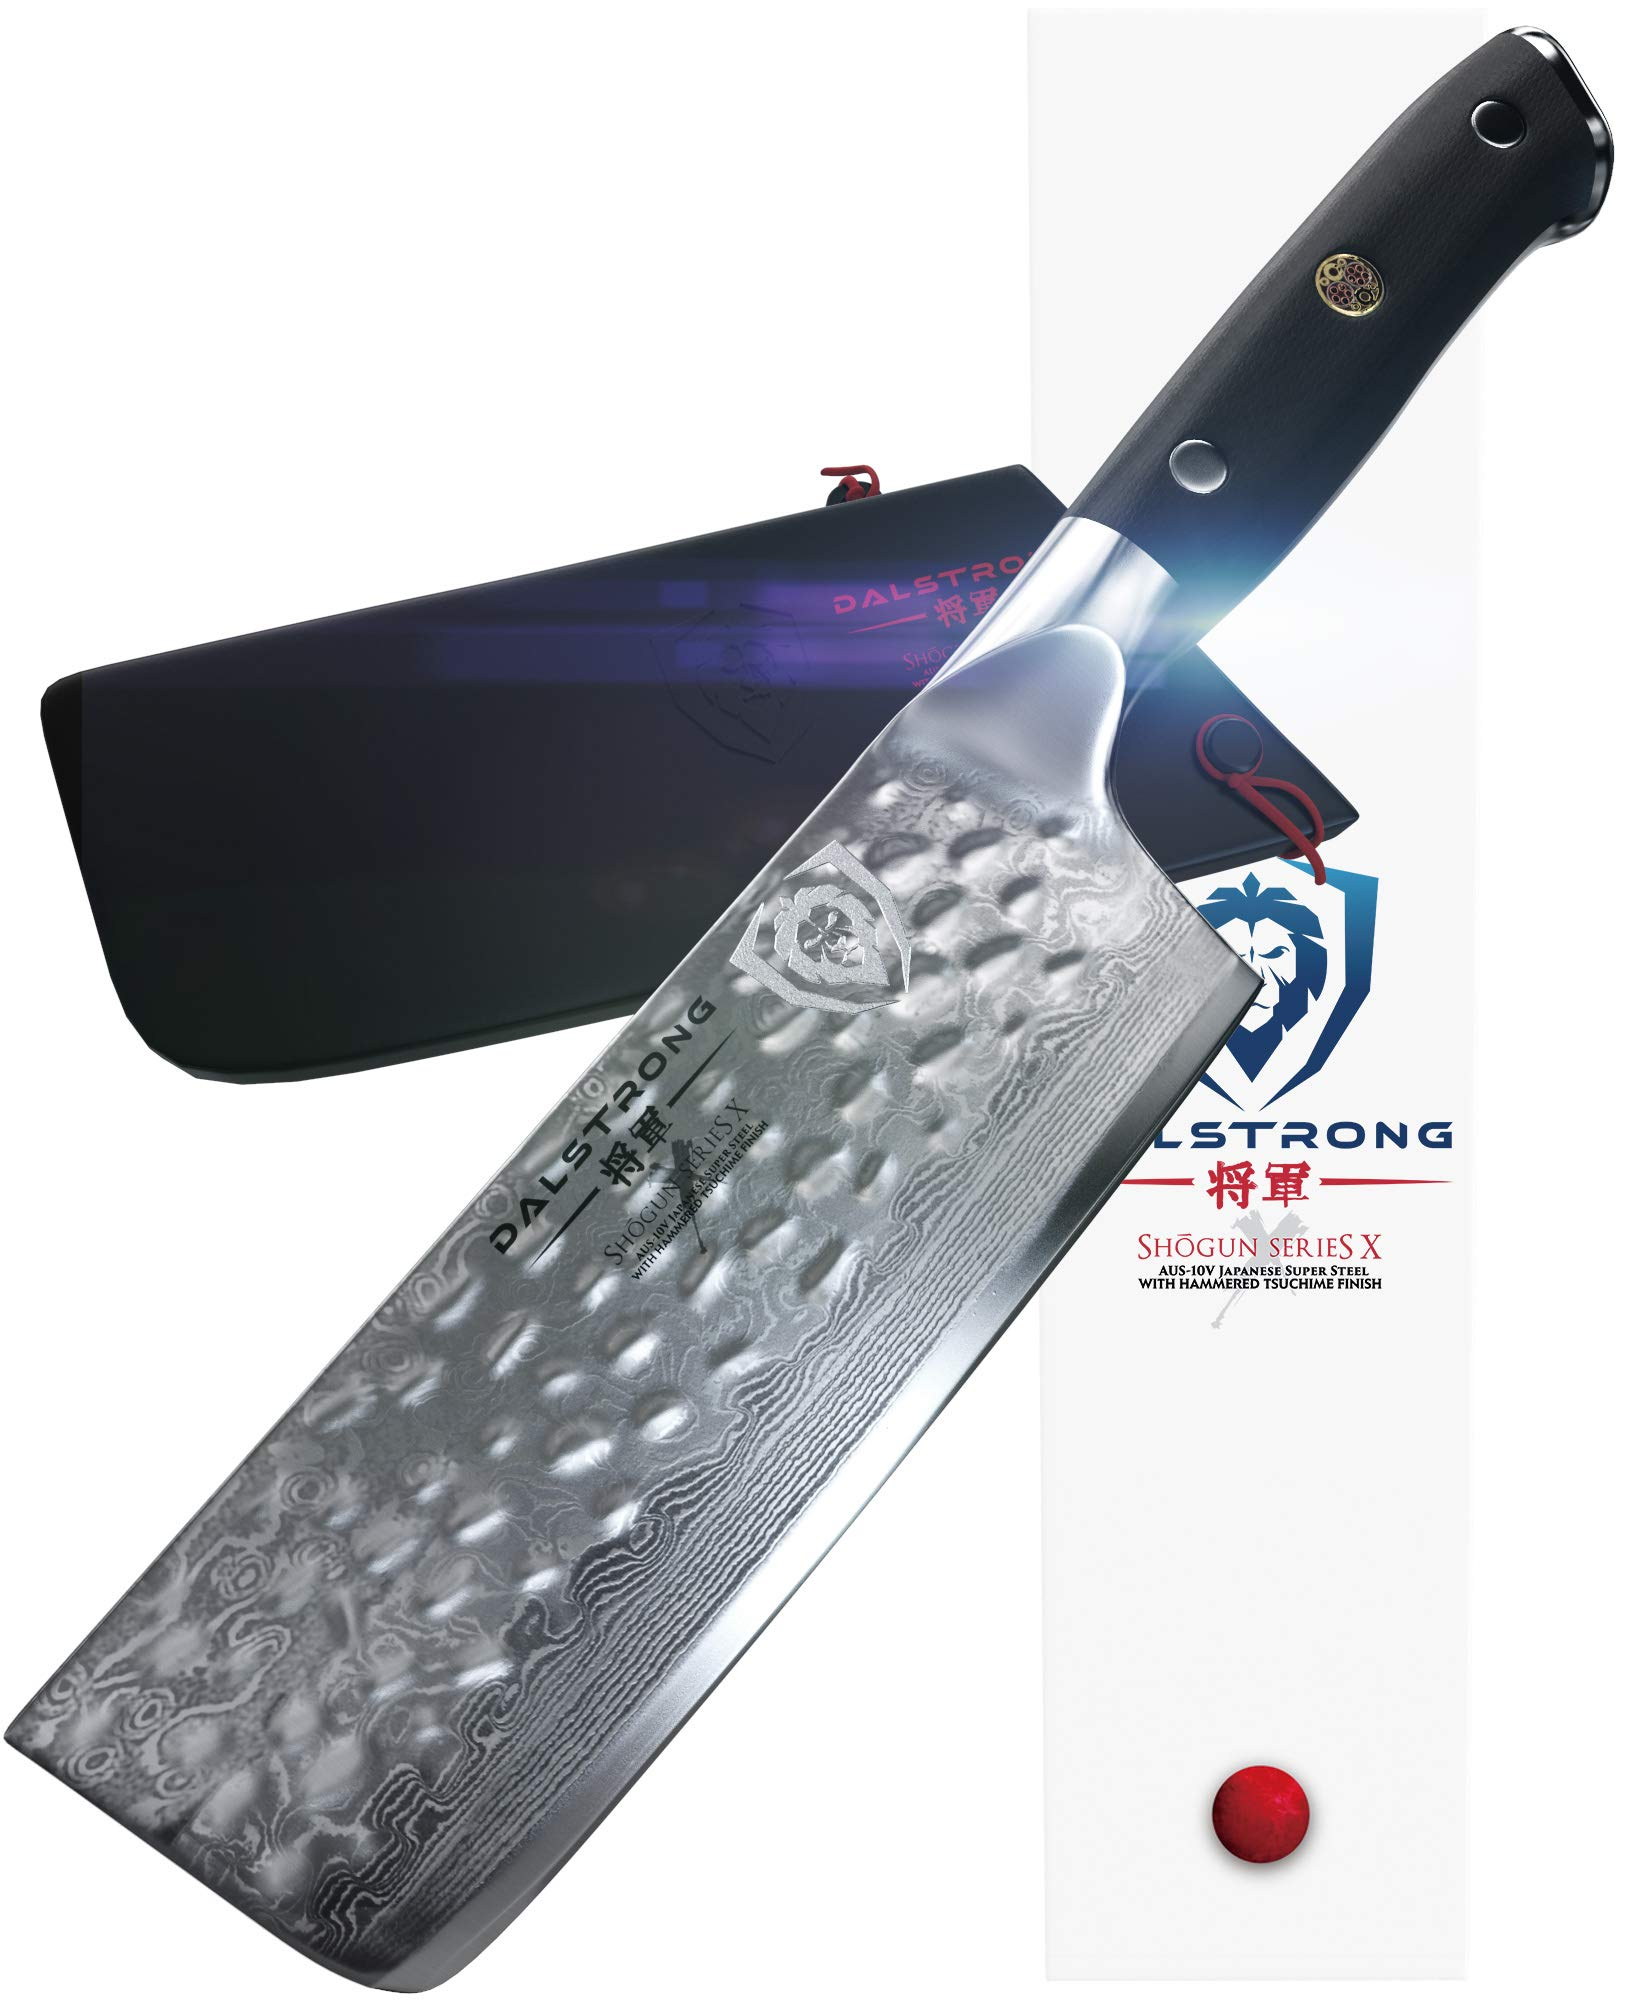 DALSTRONG Nakiri Vegetable Knife - Shogun Series X - Japanese AUS-10V Super Steel - Damascus - Hammered Finish - 6'' (152mm) by Dalstrong